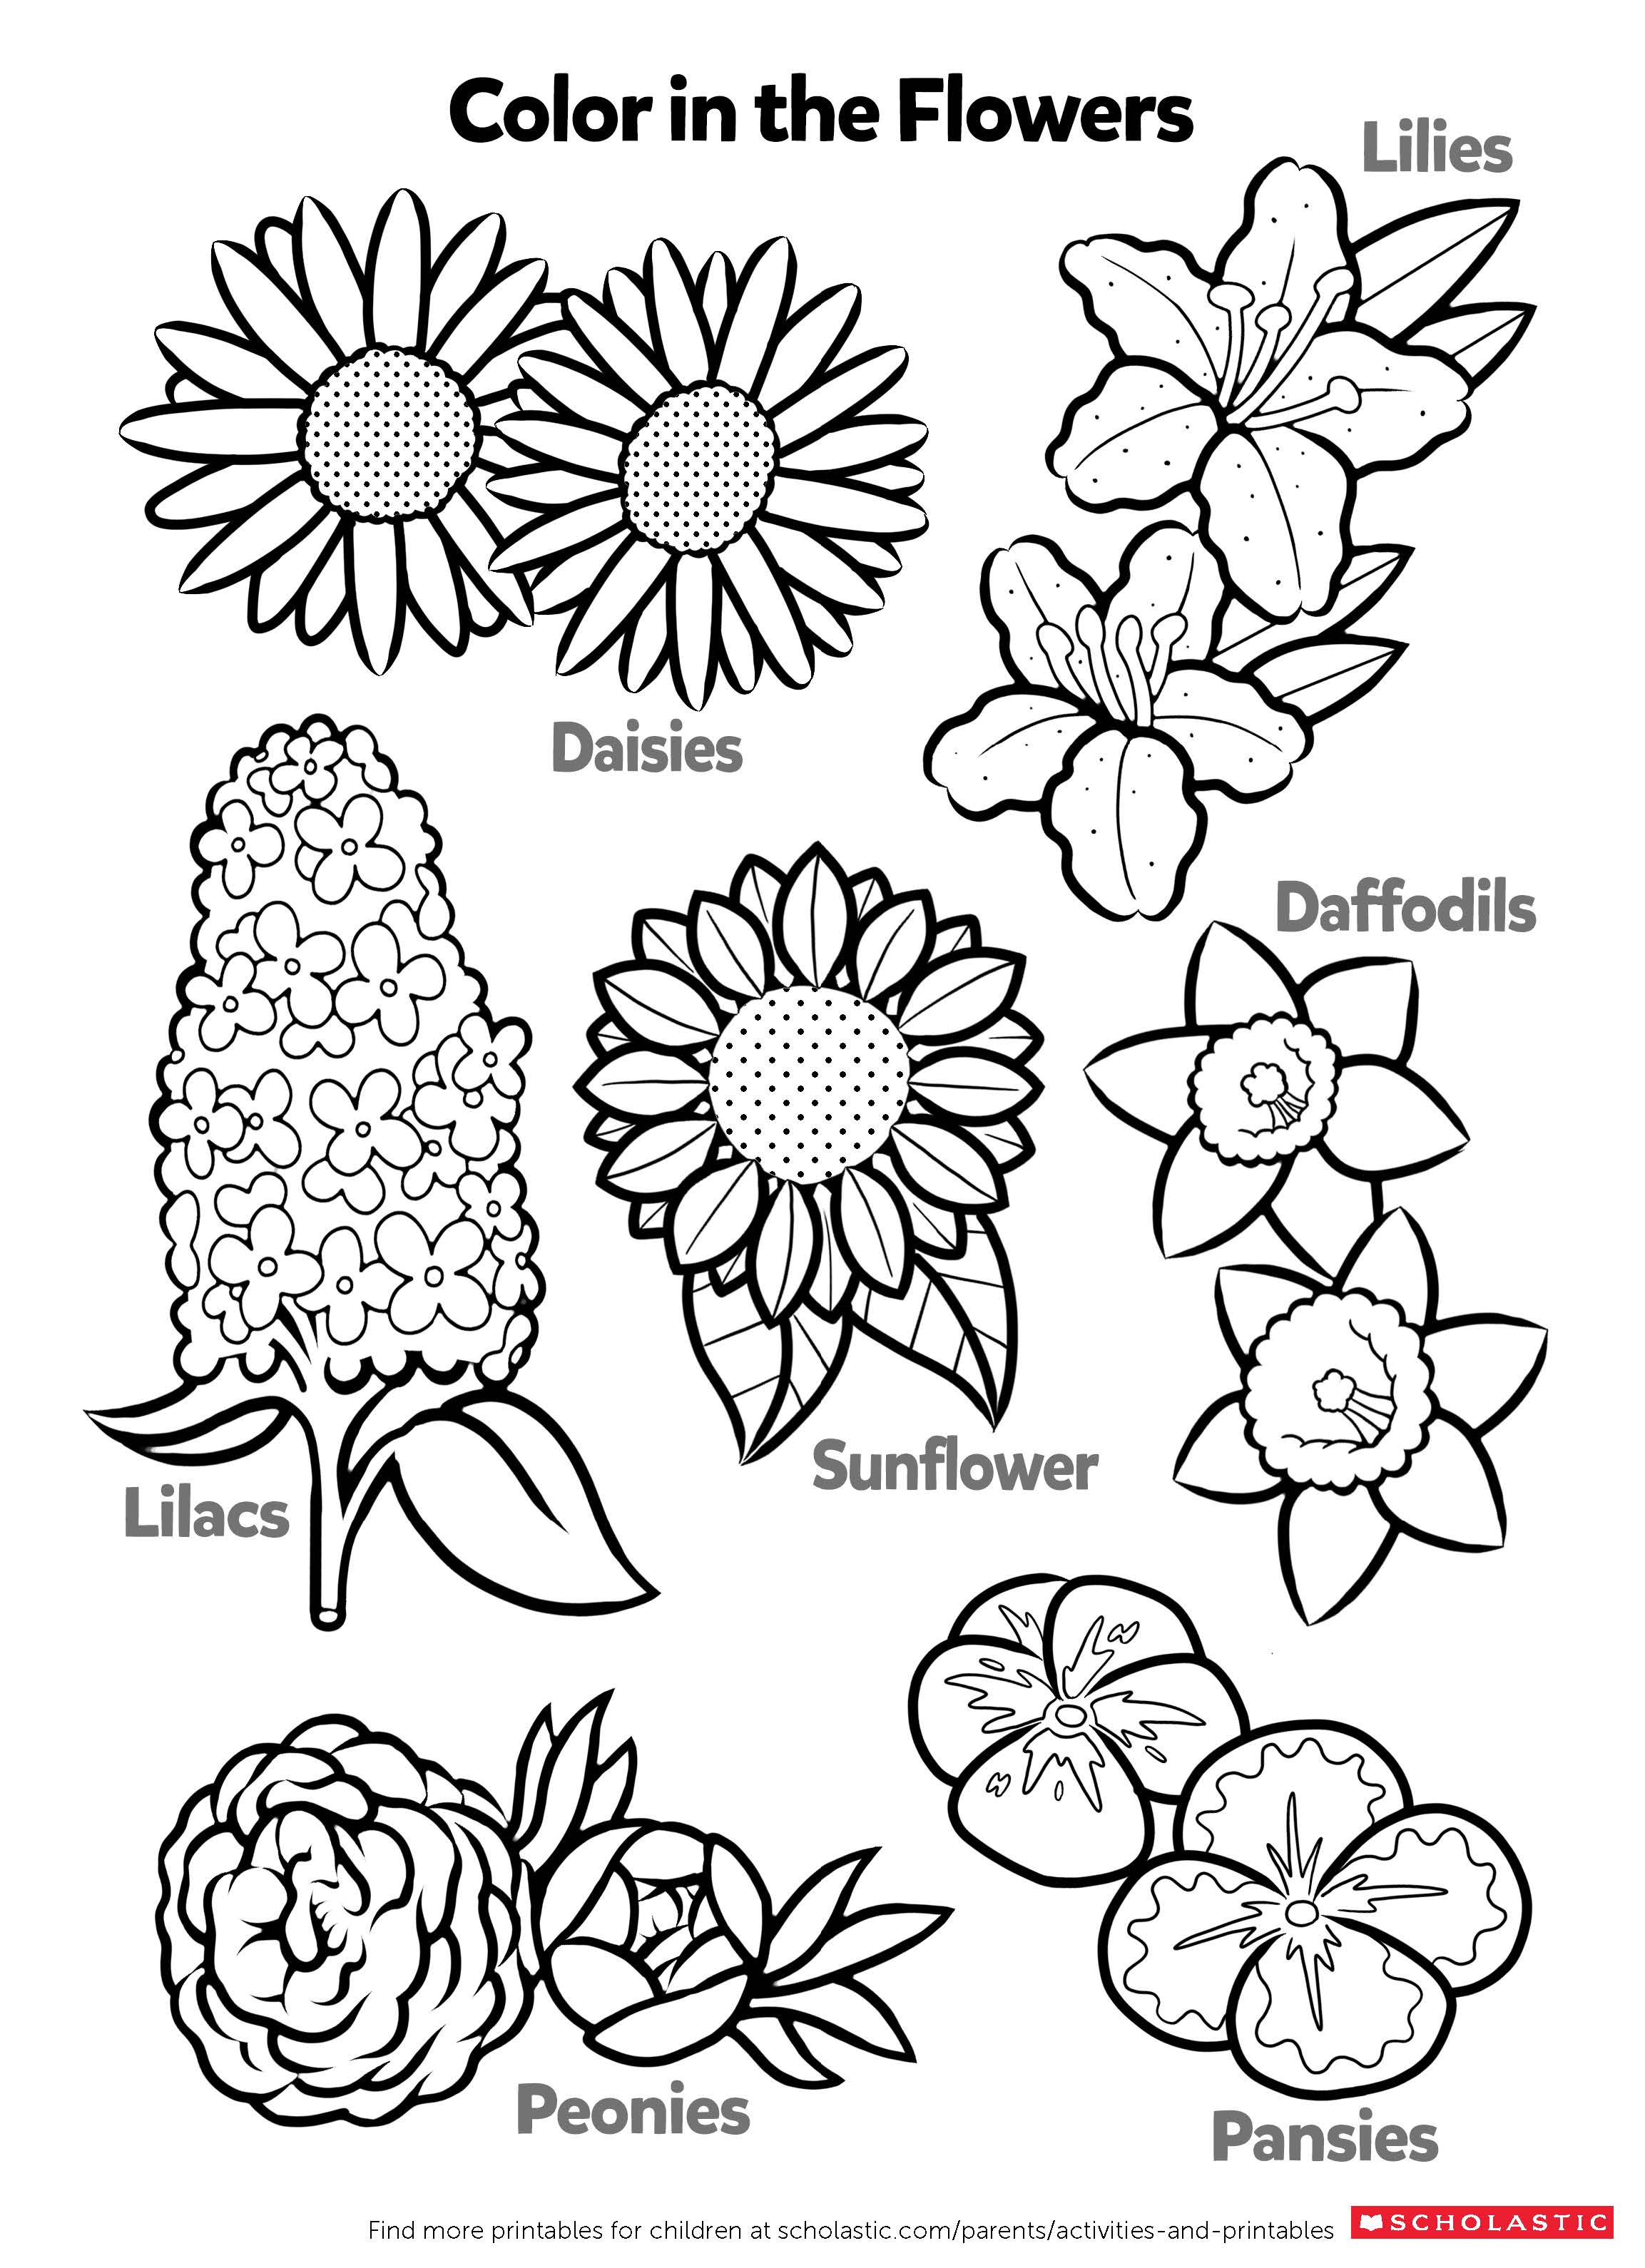 Learn About Flowers By Coloring | Worksheets & Printables ...